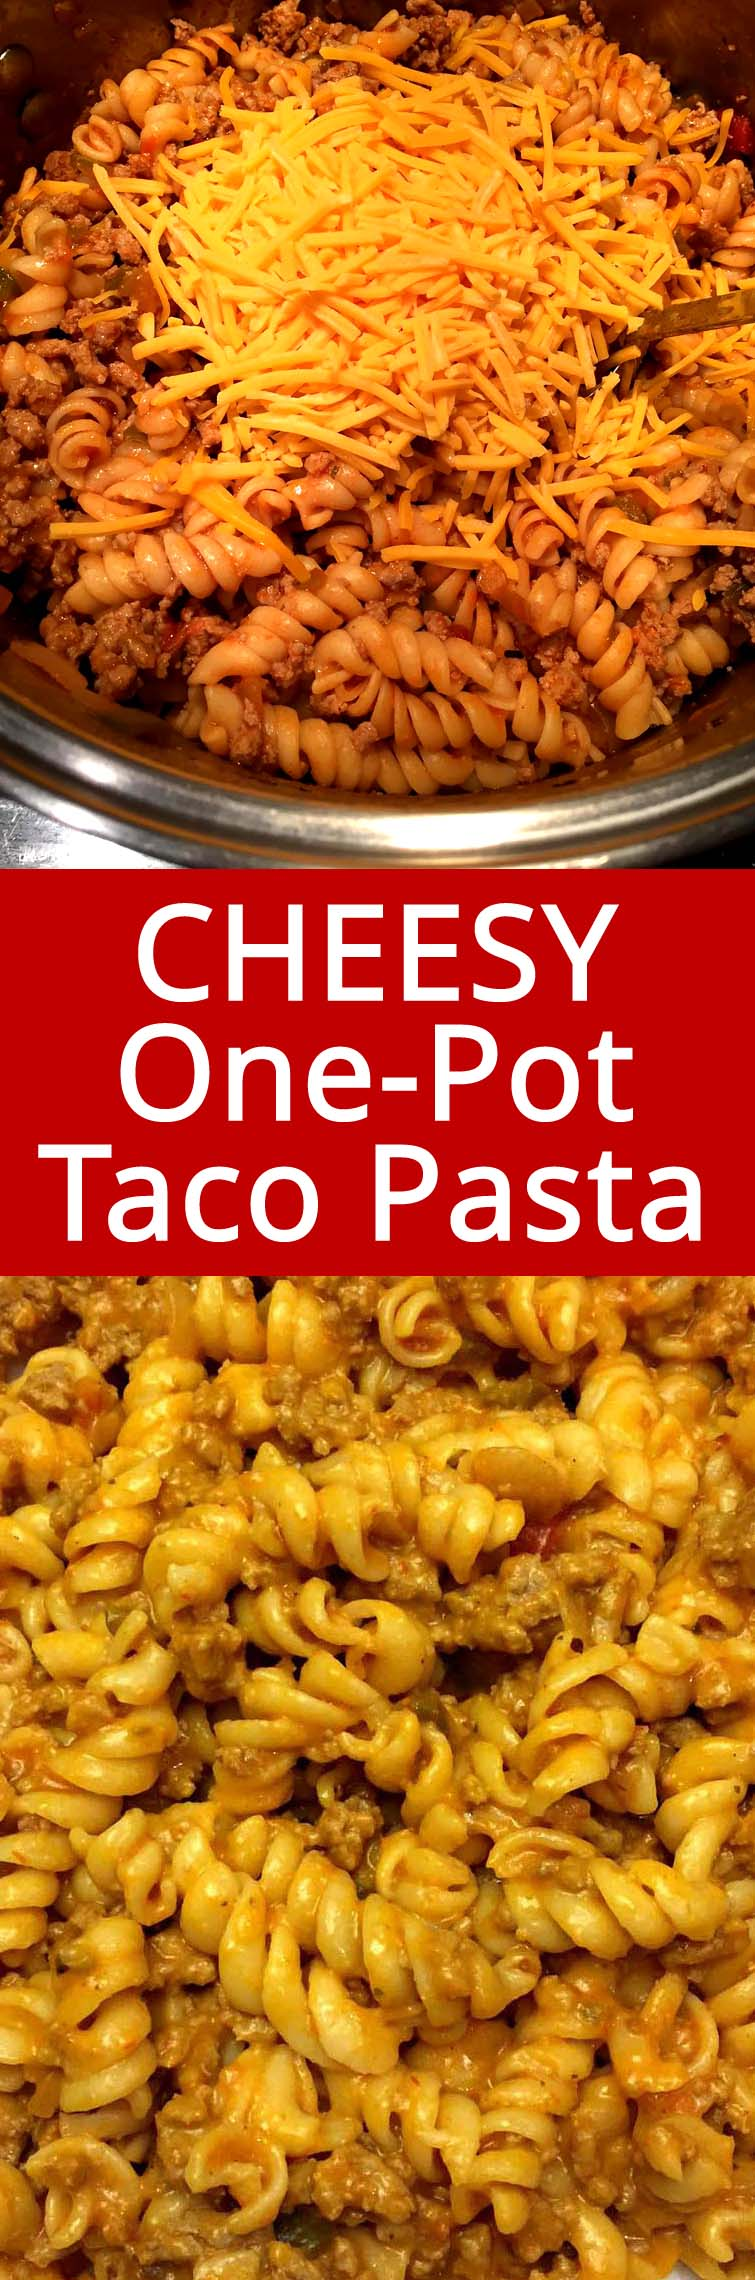 This One Pot Cheesy Taco Pasta Is So Easy To Make And Tastes Amazing